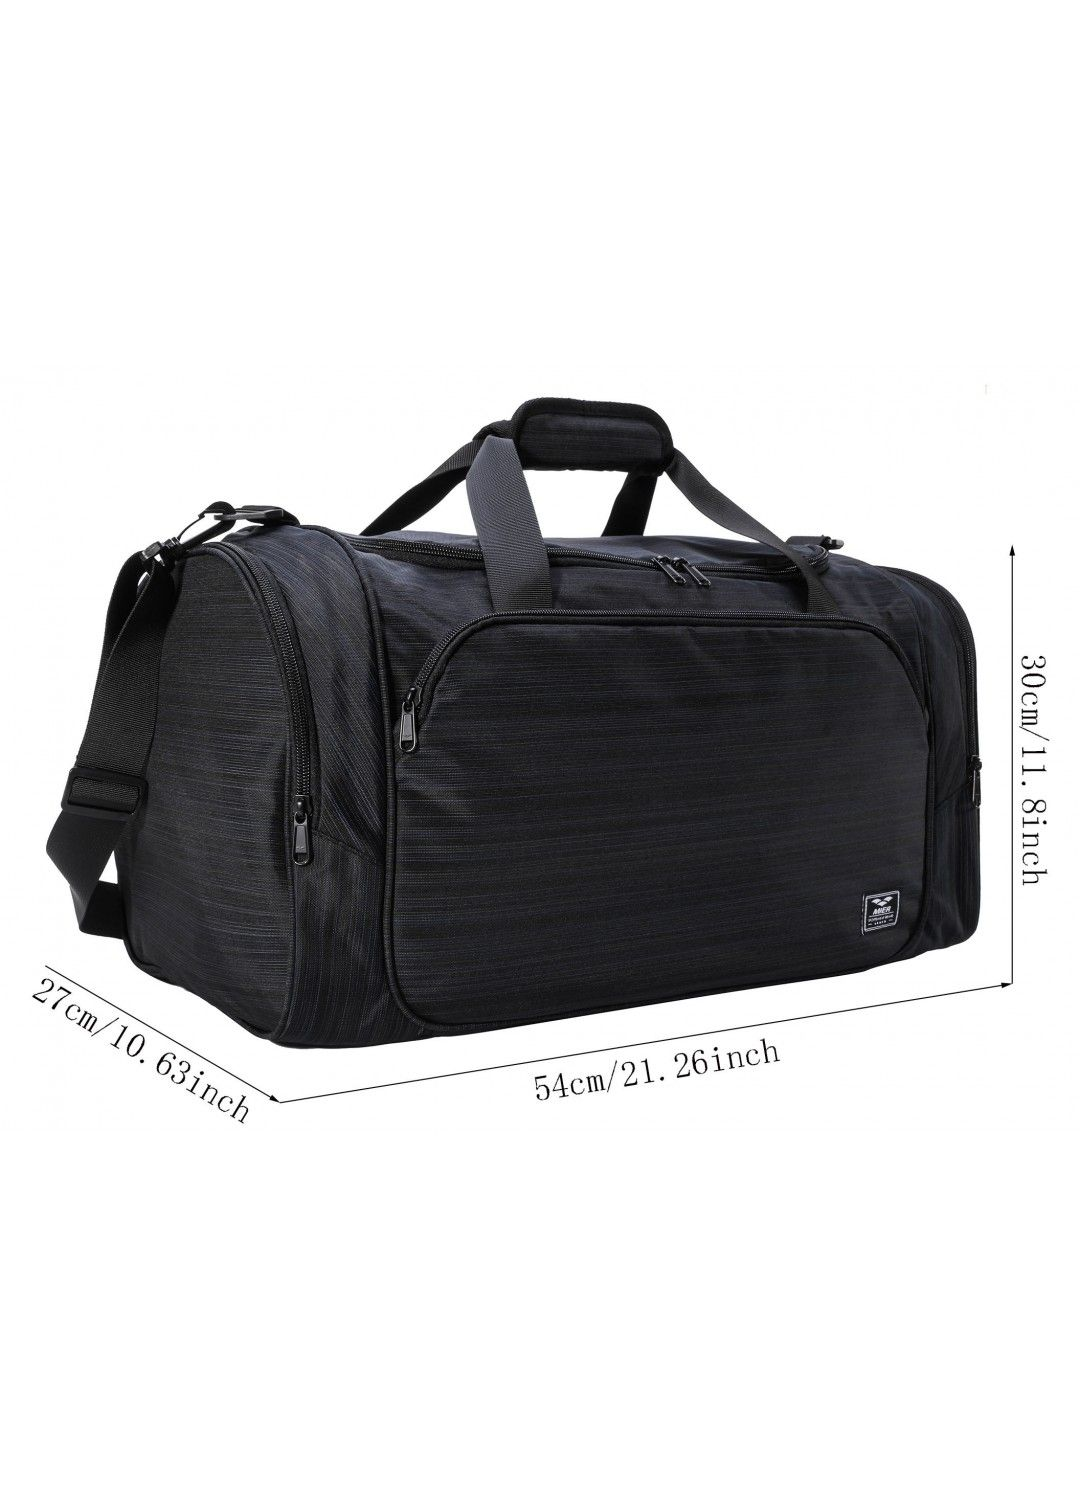 fc0b646309 MIER Black Gym Bag with Wet Pocket Travel Duffel Bag for Men and Women